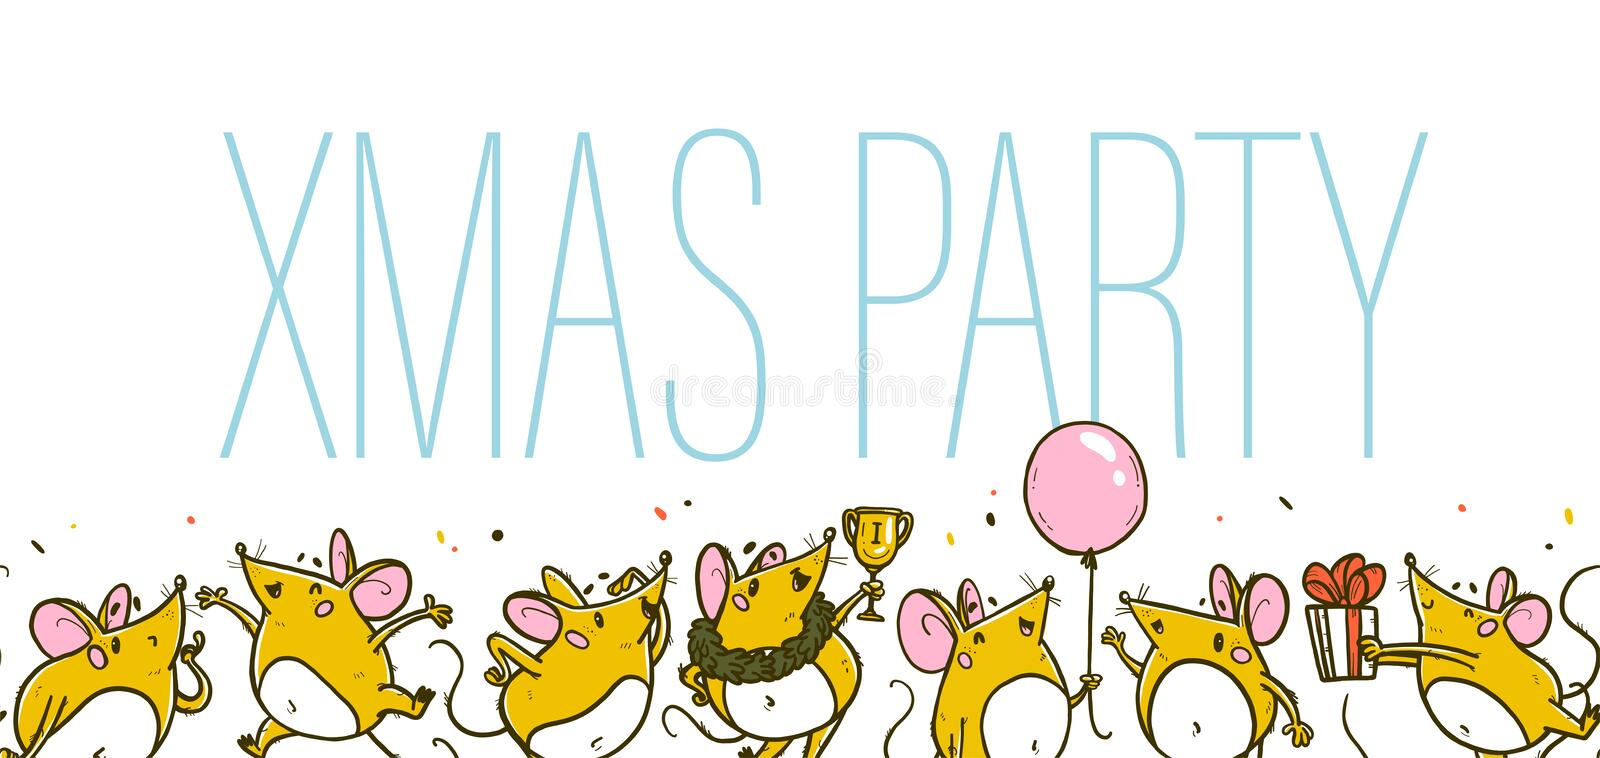 Vector Merry Christmas illustration. Xmas party concept with hand drawn funny mice character celebrating happy on white background stock illustration